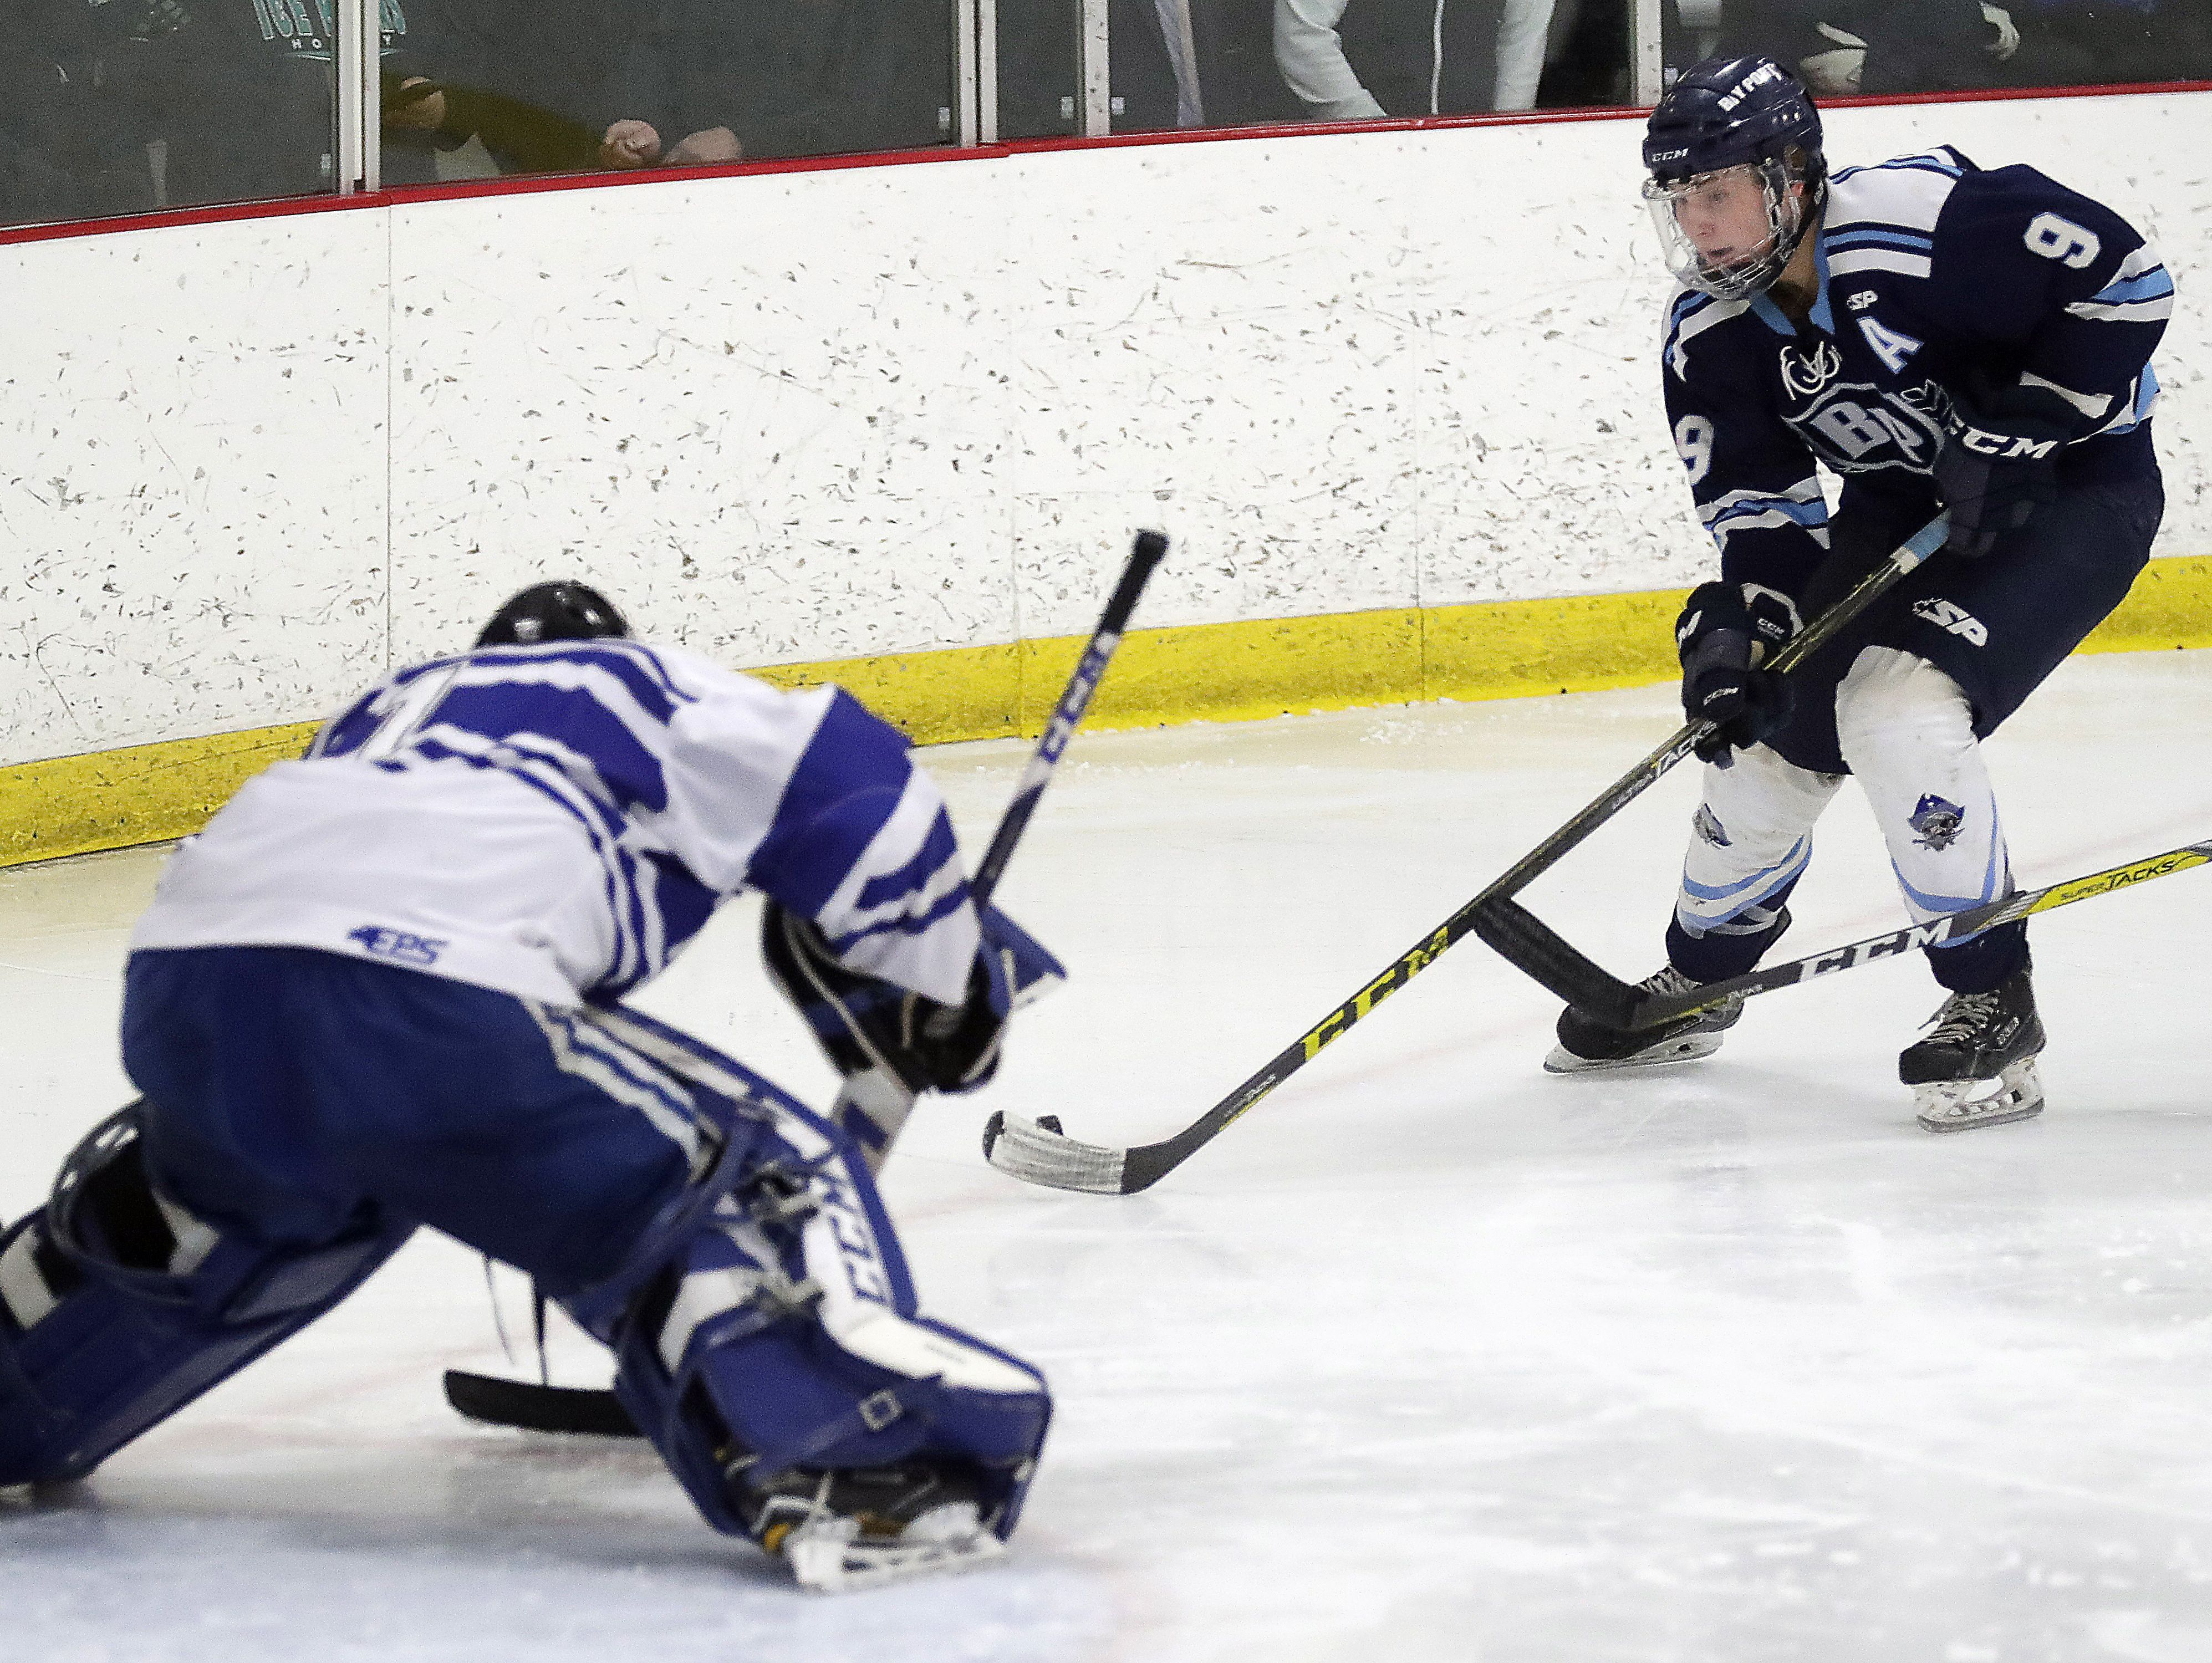 Bay Port senior Austin Mikesch is the Pirates' leading scorer with 45 points (25 goals, 20 assists). Mikesch is one of 10 players with at least 10 points.